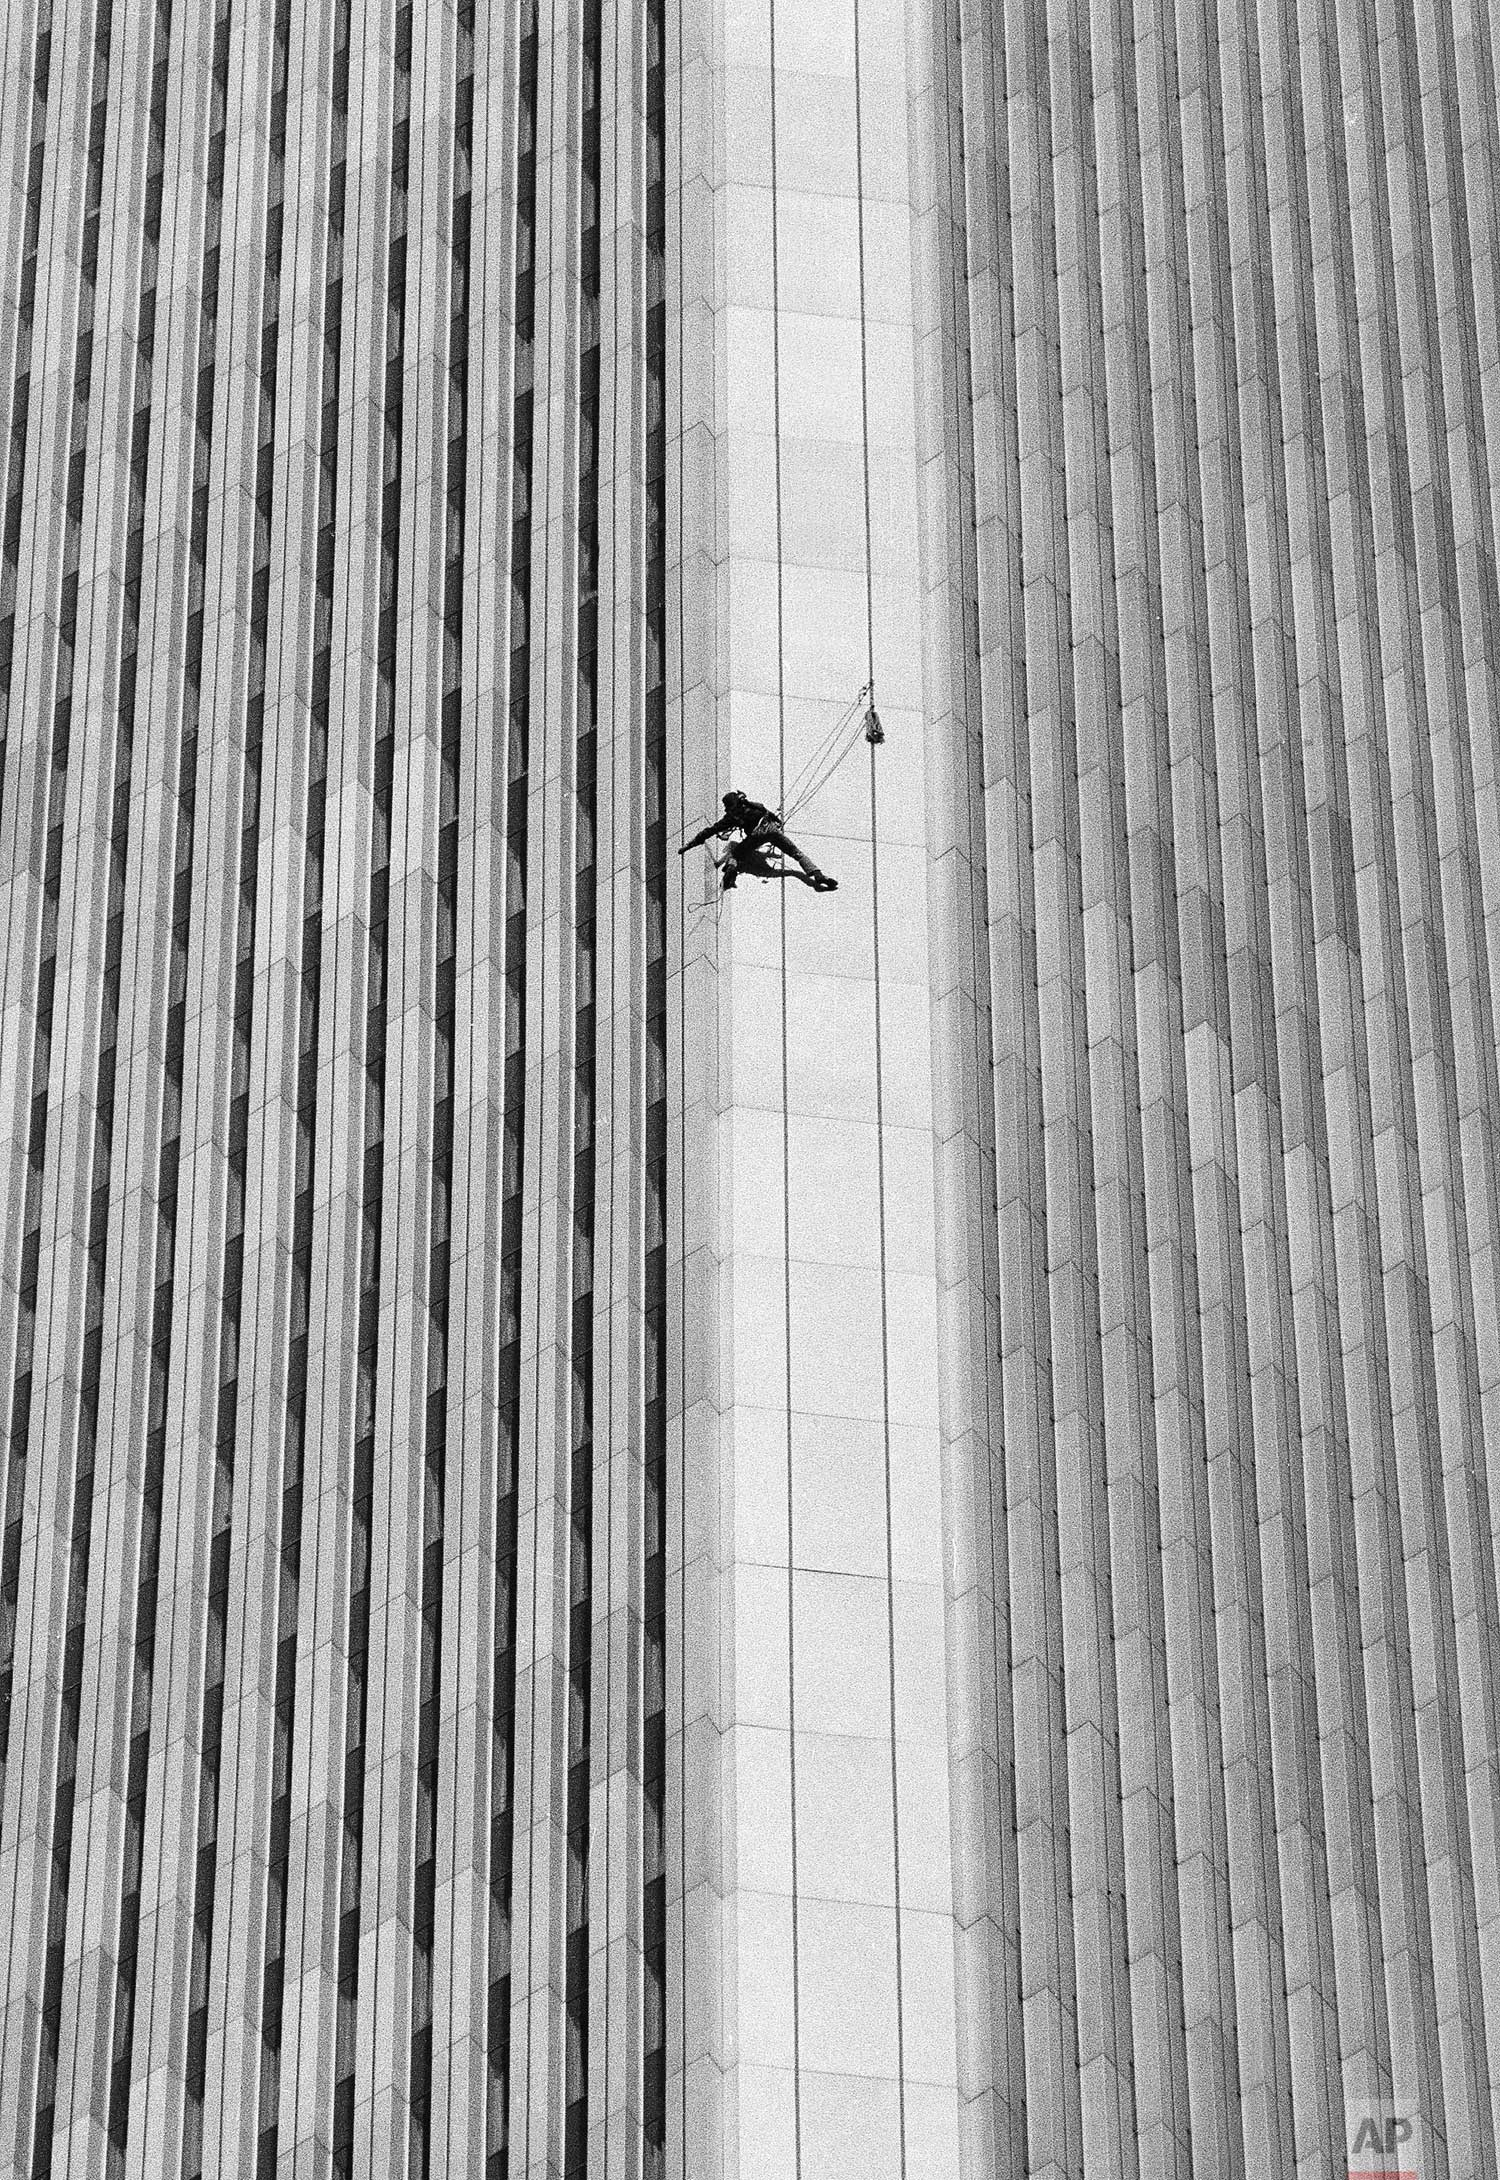 A man identified by friends as George Willig, 28, of New York, climbs the south tower of the World Trade Center in New York on Thursday, May 26, 1977. The building is 110 stories high. (AP Photo/Dave Pickoff)